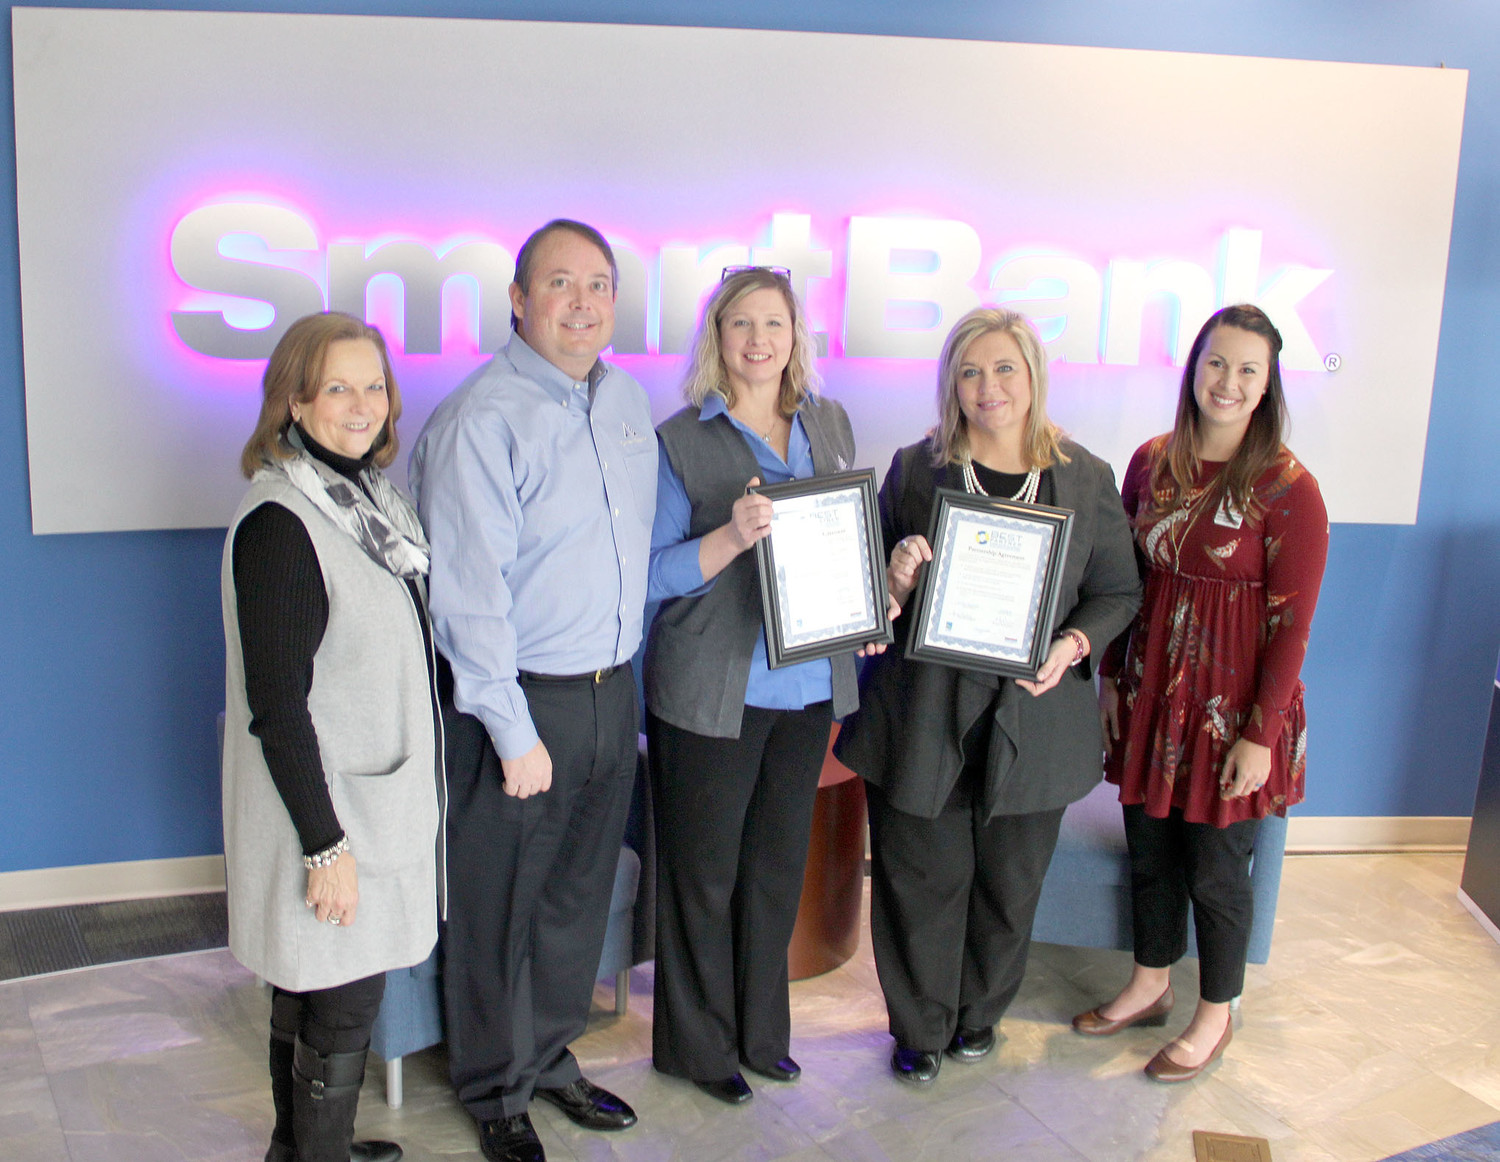 PROUDLY displaying their BEST Partnership certificates from SmartBank are Matt Jenne, market leader; and Sandy McBride, branch manager; with E.L. Ross Elementary Principal Lisa Earby and Stephanie Stone, assistant principal, along with Sherry Crye, Chamber of Commerce director of workforce development, left.